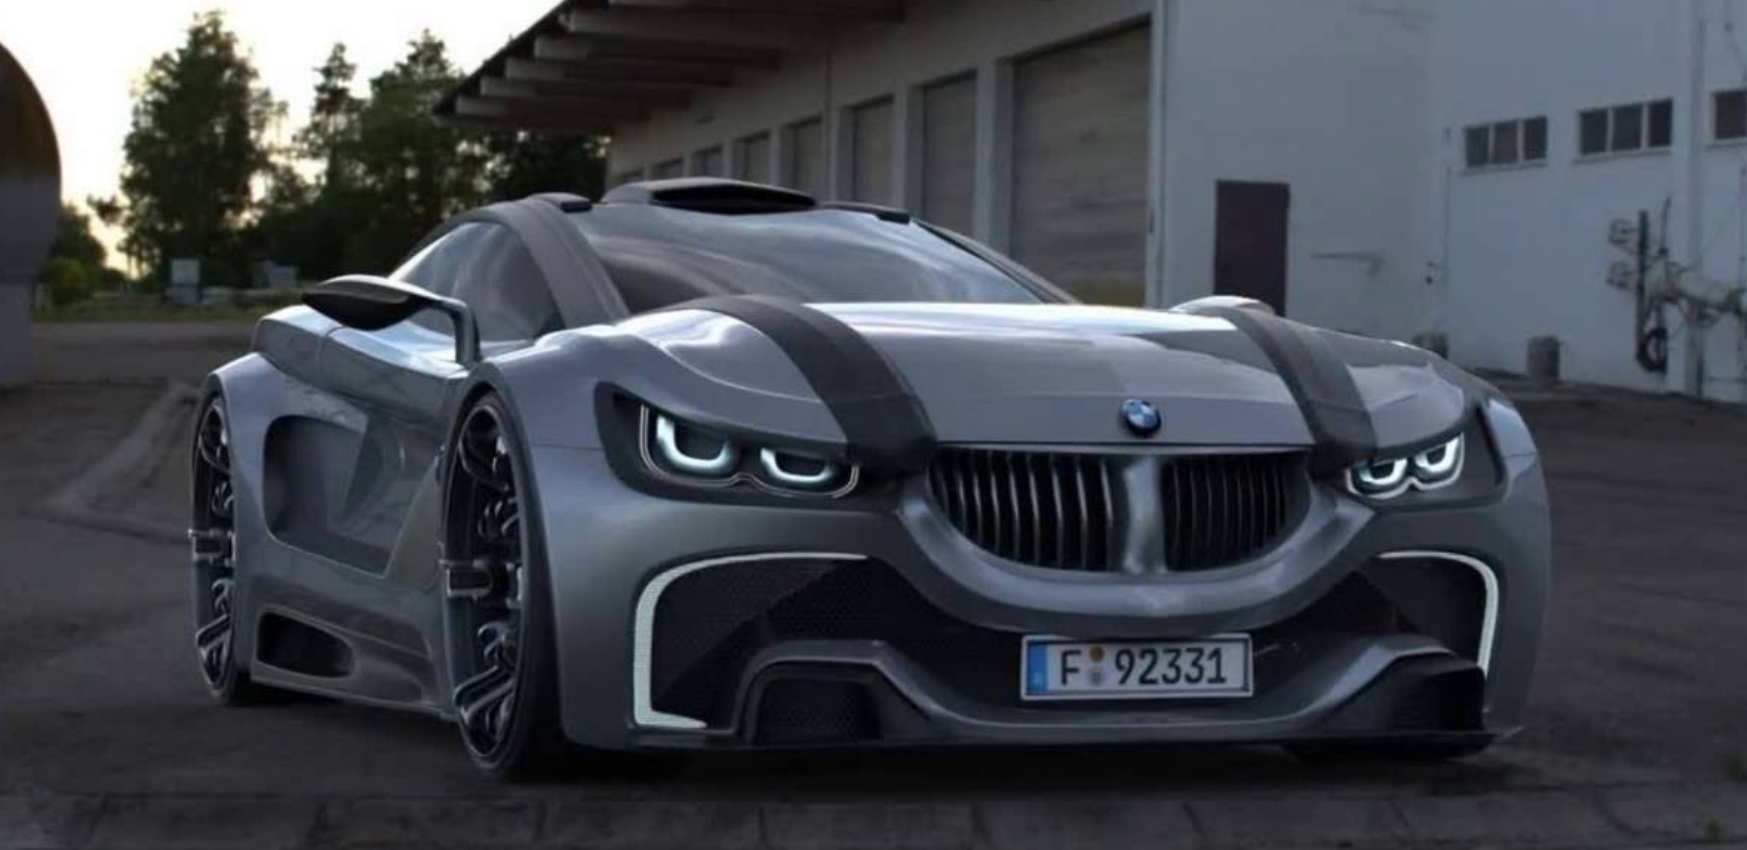 13 All New 2020 Bmw M9 Interior with 2020 Bmw M9